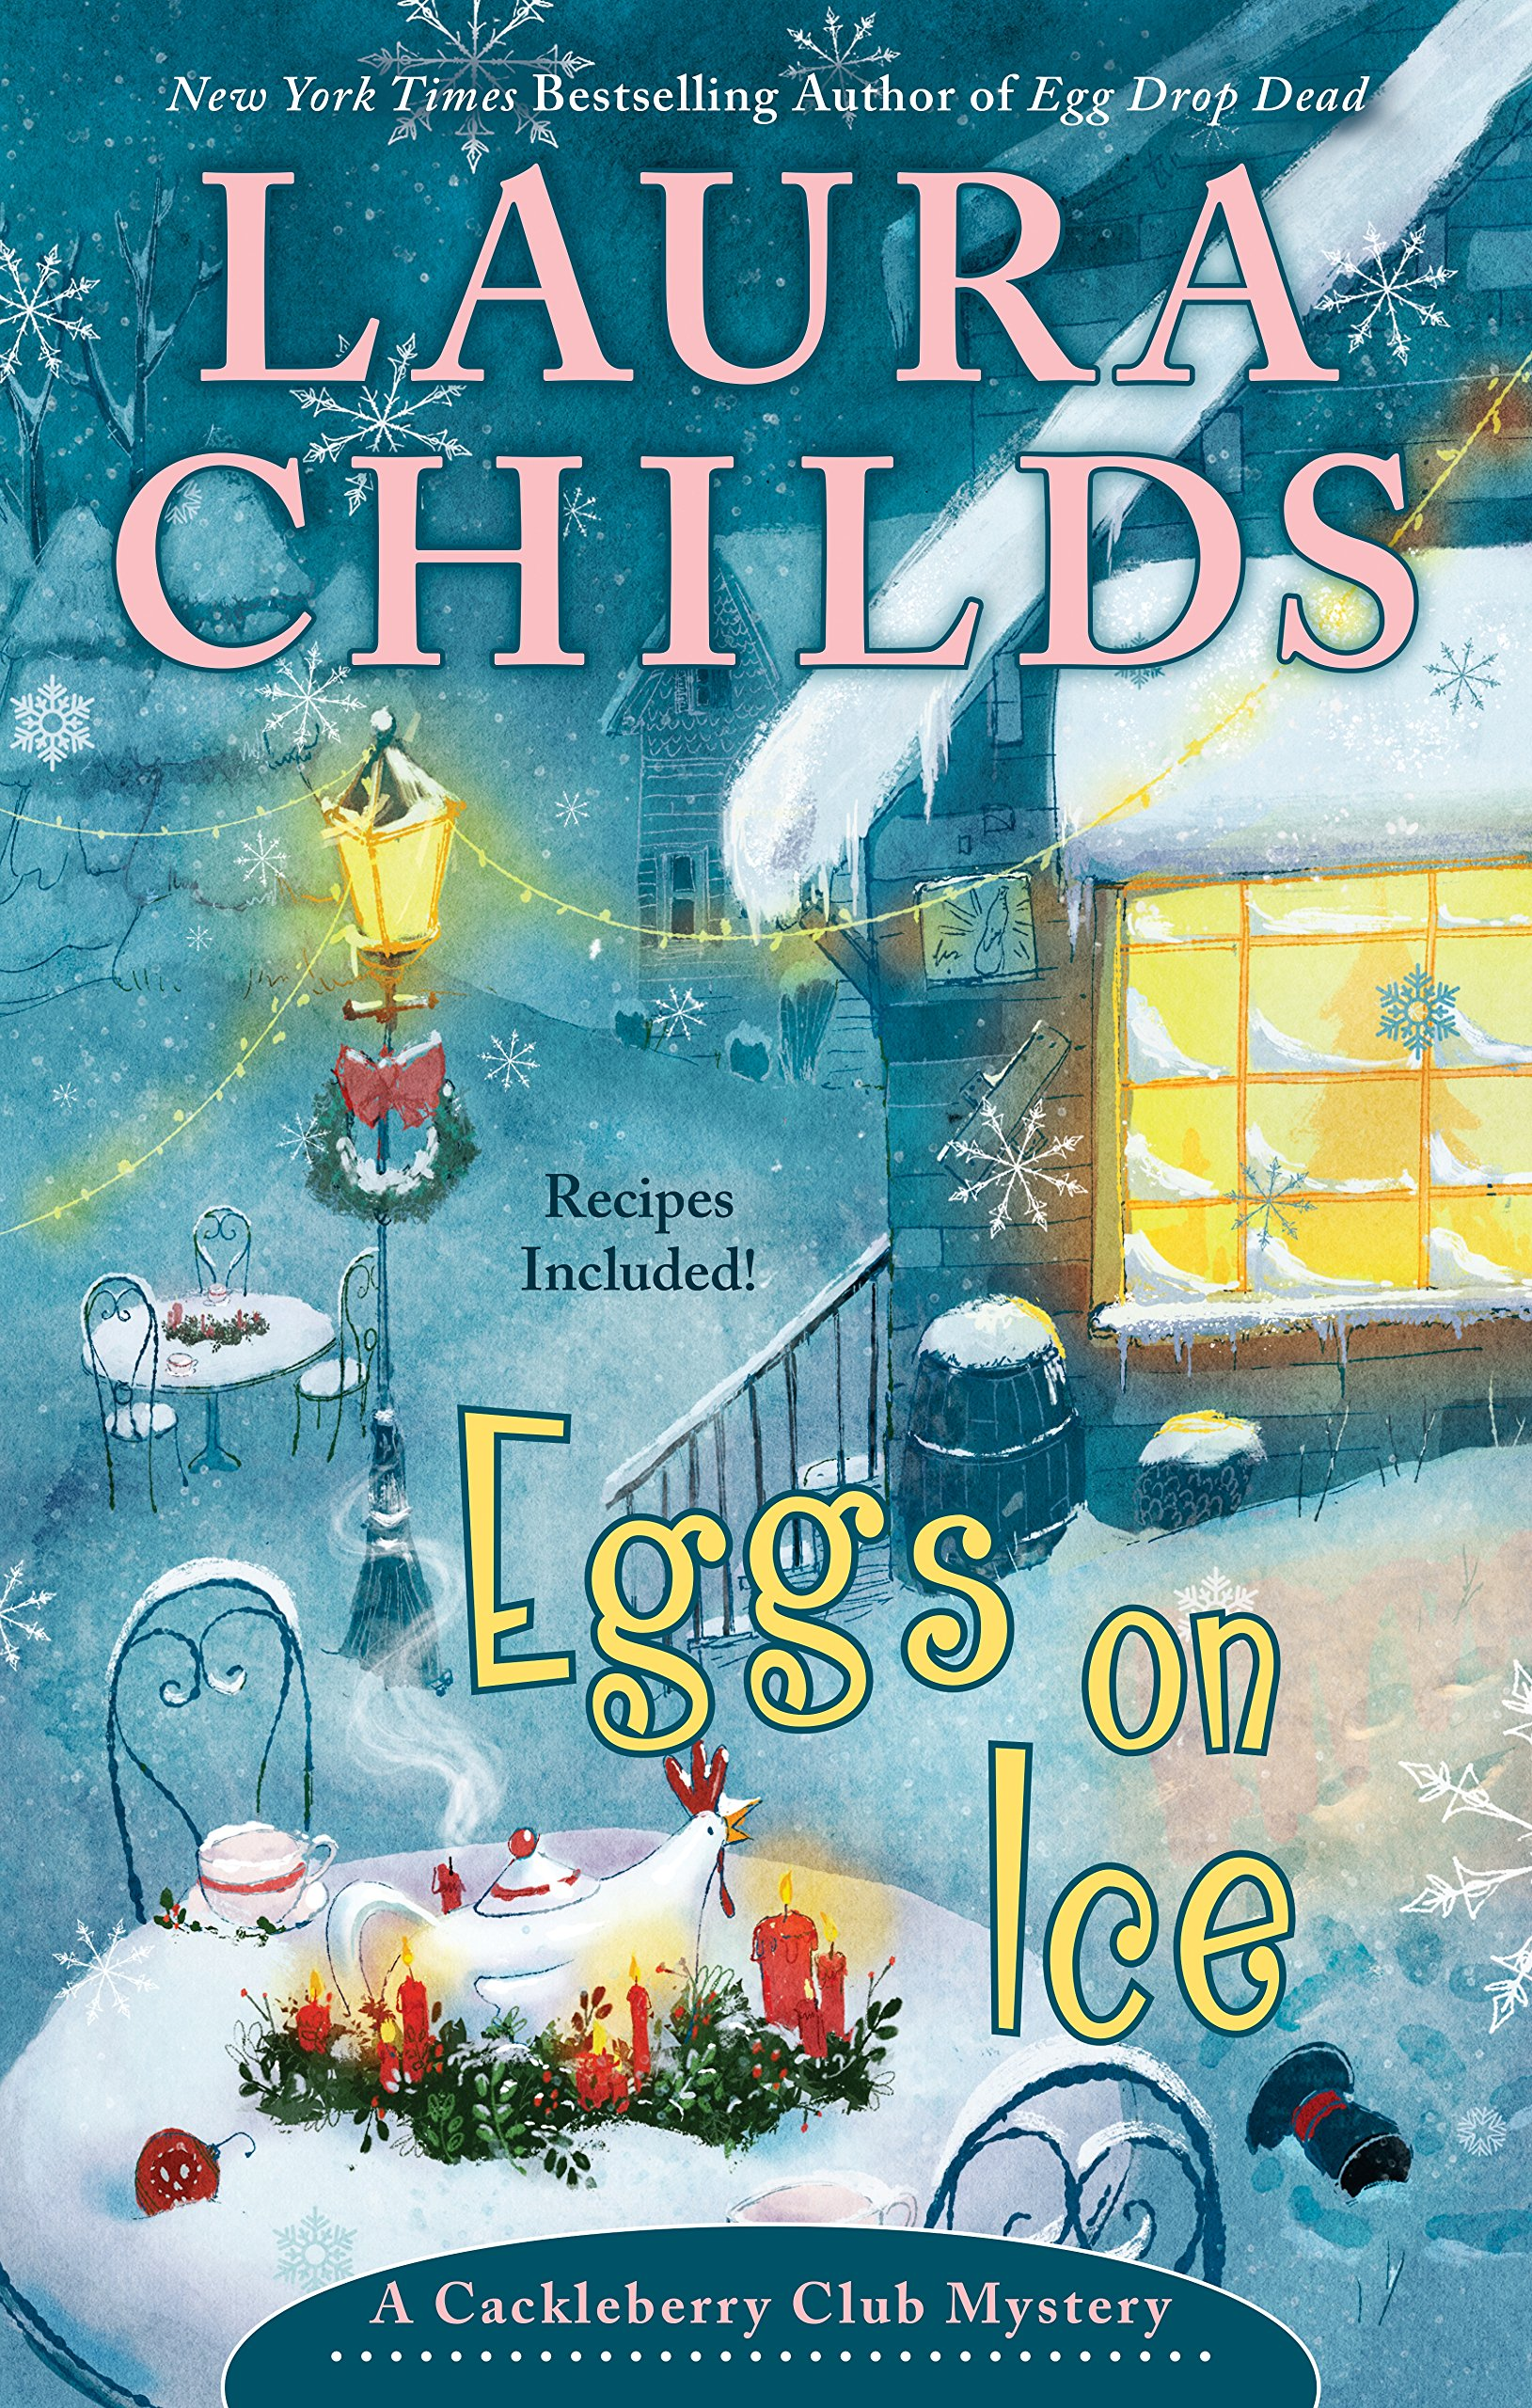 Amazon Com Eggs On Ice A Cackleberry Club Mystery 9780425281727 Childs Laura Books Stream hoochie mama by miré from desktop or your mobile device. eggs on ice a cackleberry club mystery